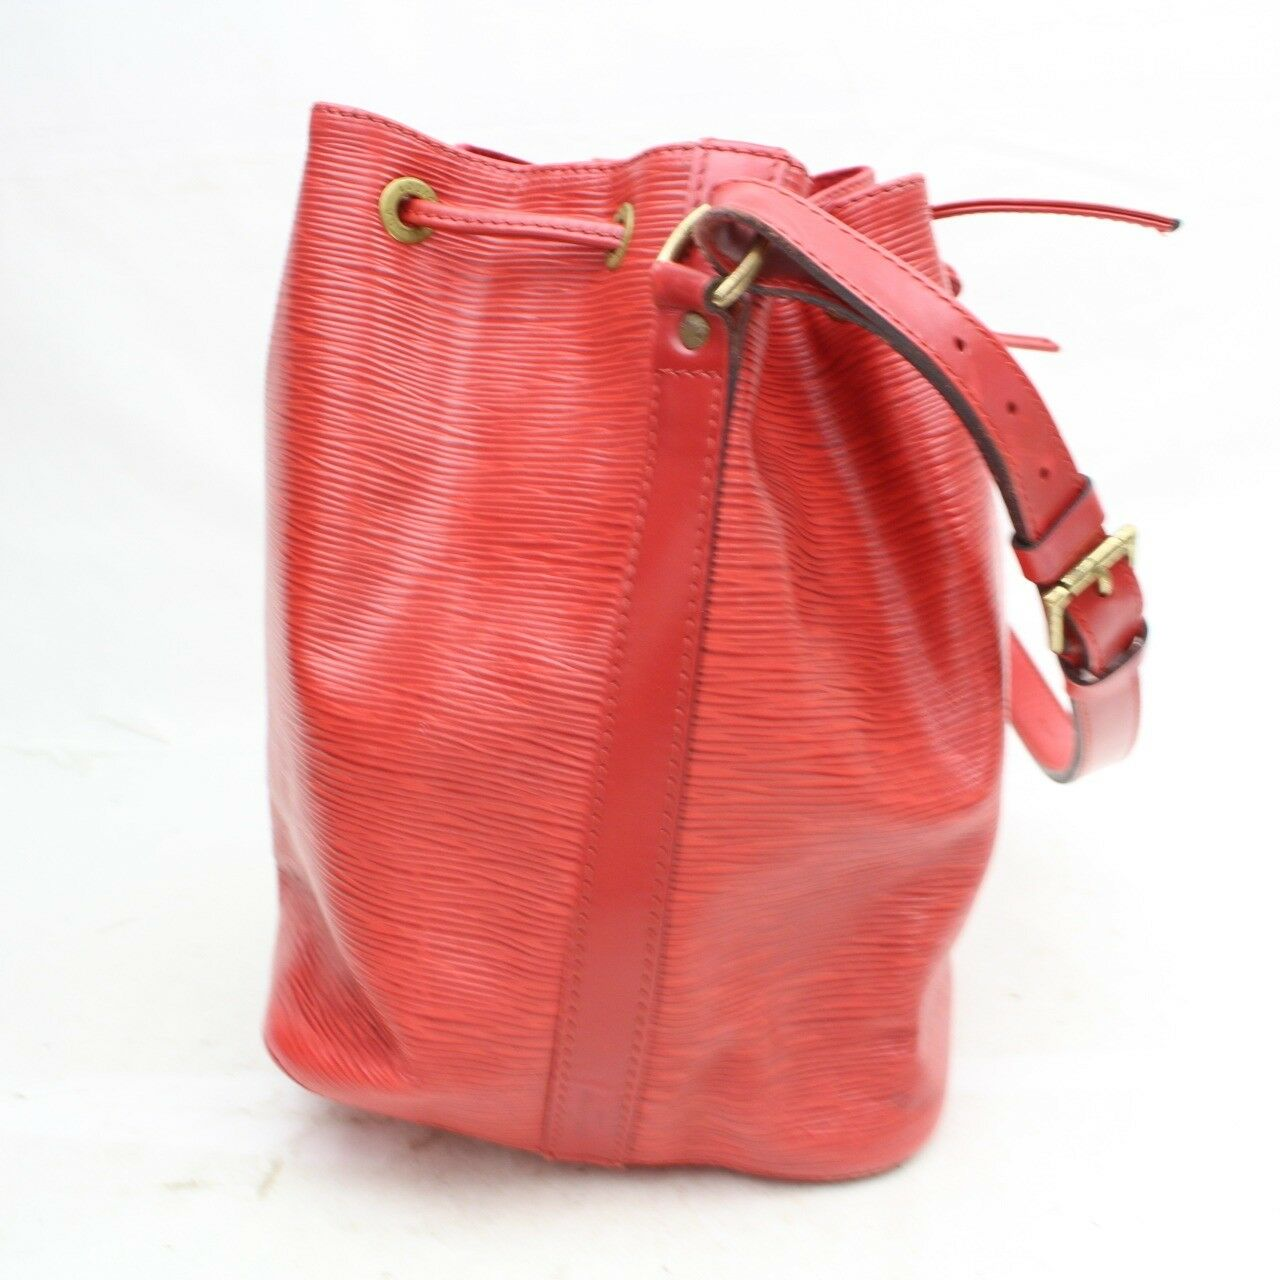 Louis Vuitton Petit Noe M44107 Red Epi Shoulder Bag 11188